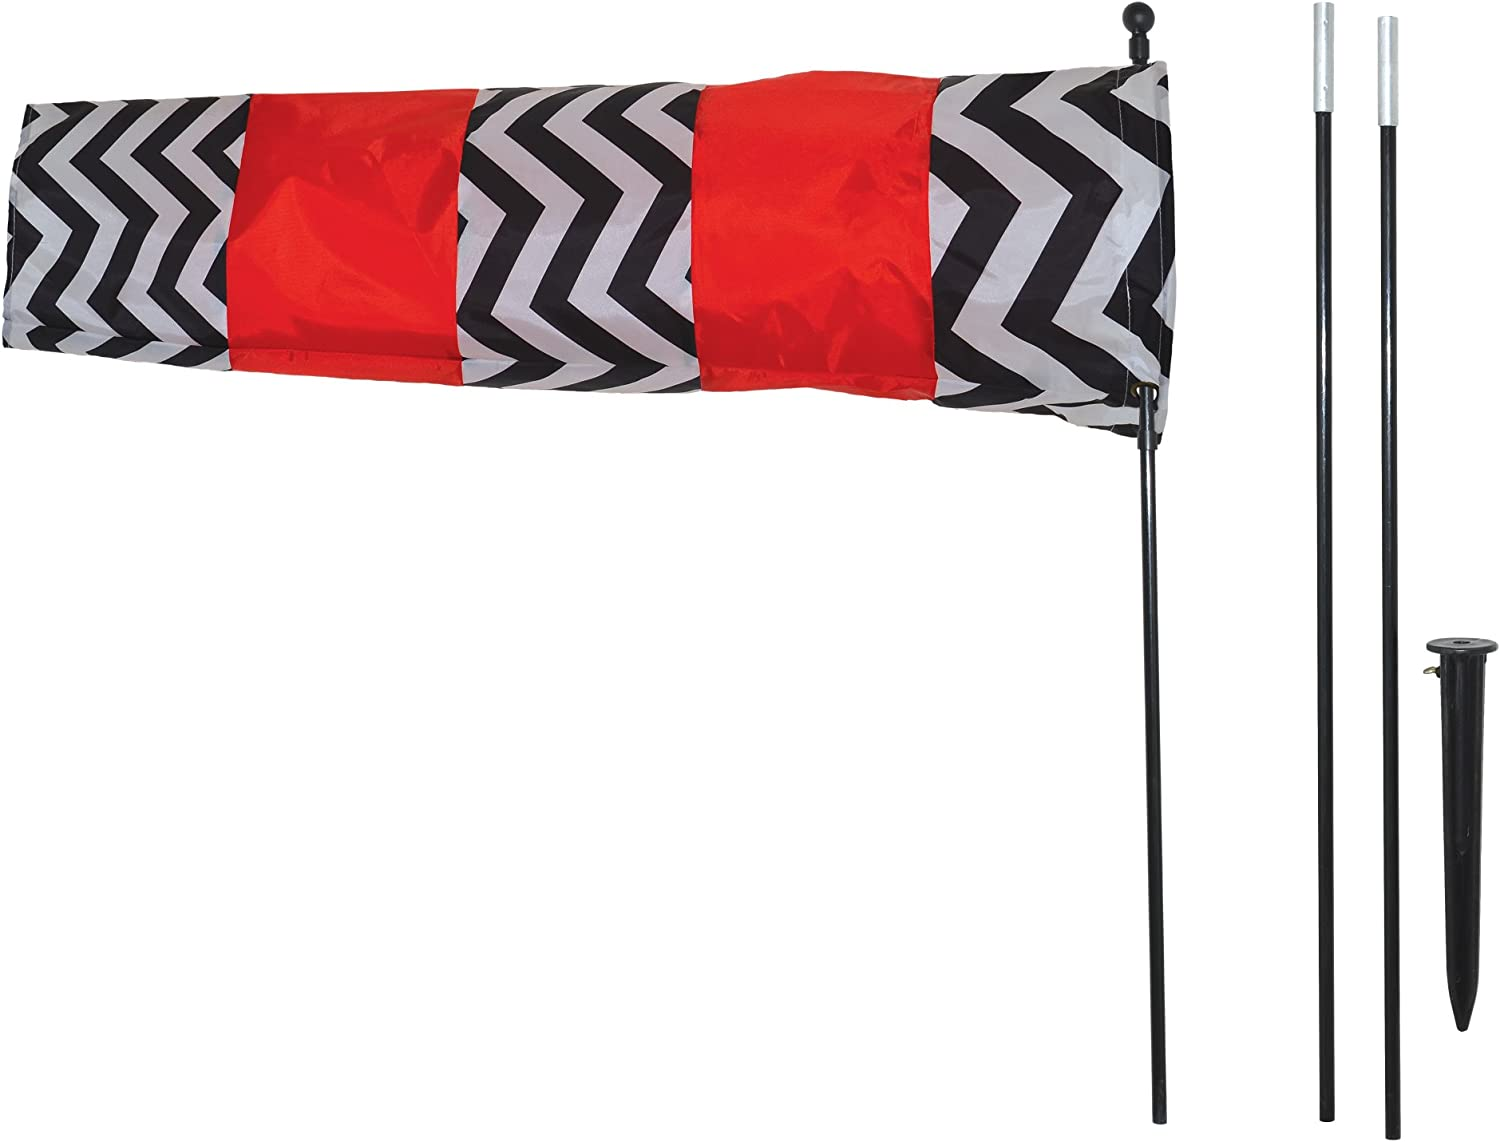 In the Breeze 4884 Directional Windsock with 8' Pole, Red, Black and White